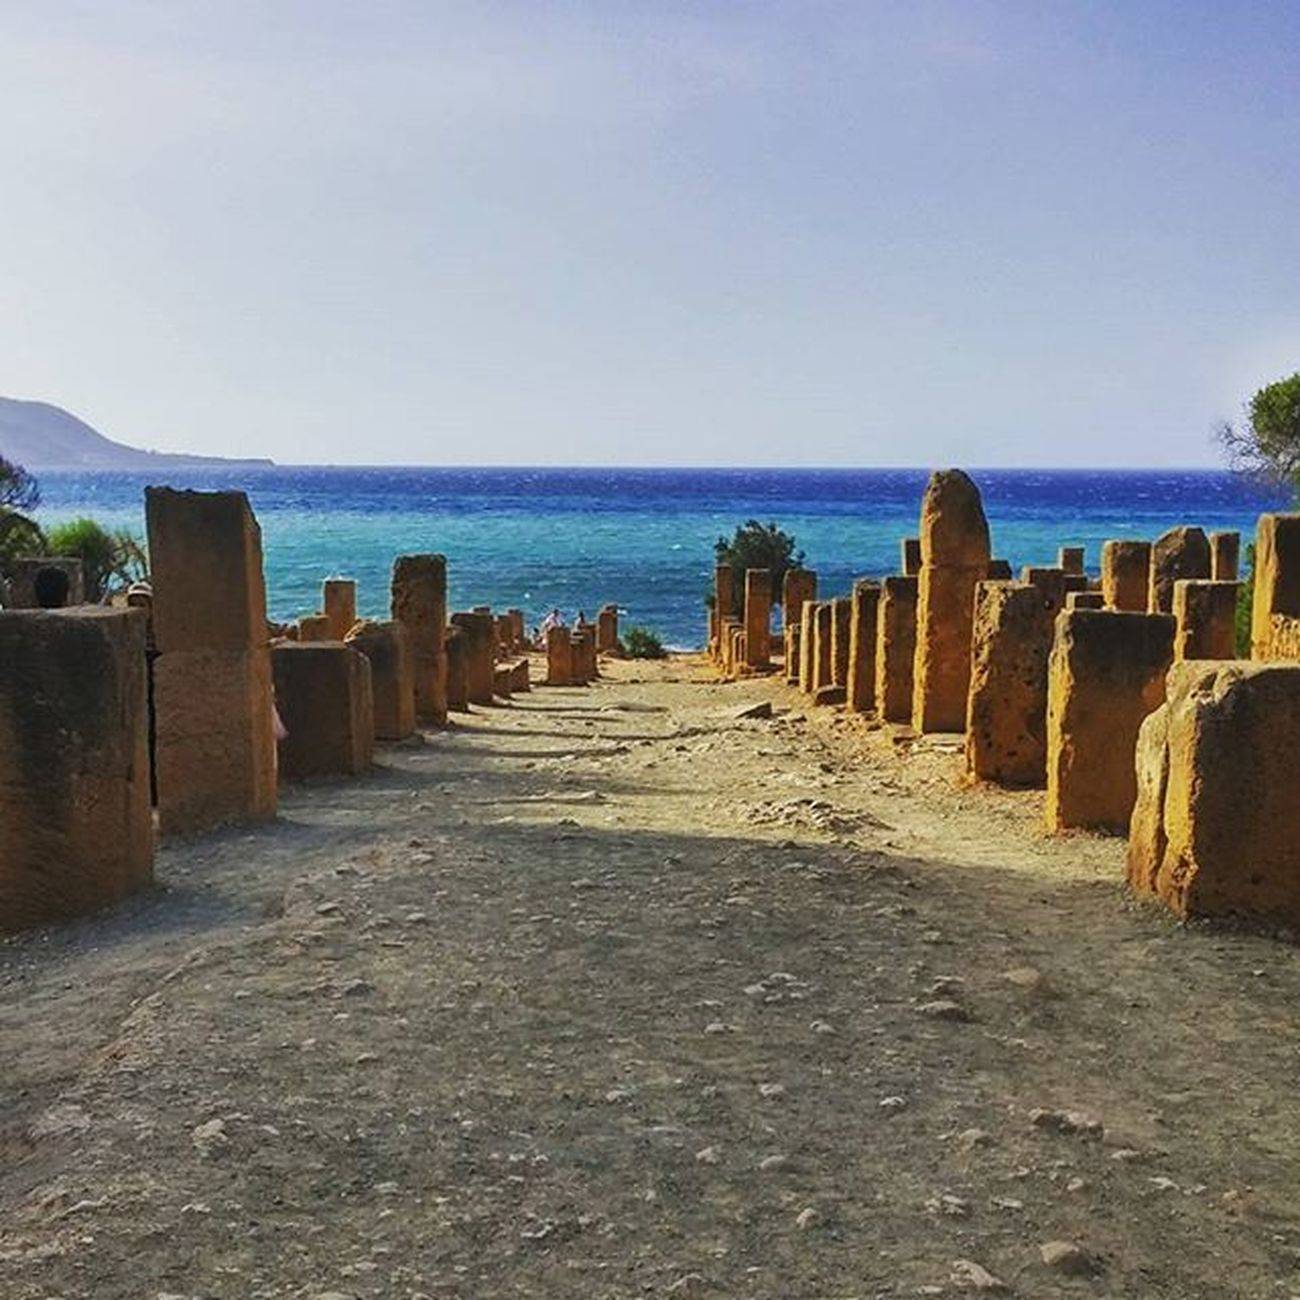 The place where the ruins meet the deep blue sea. The Roman Ruins of Tipasa. Algeria Unescoworldheritage Tourismalgeria Hiddengems AncientCity Romancity Historicruins Instatravel Instamoments Instacaptured Instalove Damnwasithotthisday